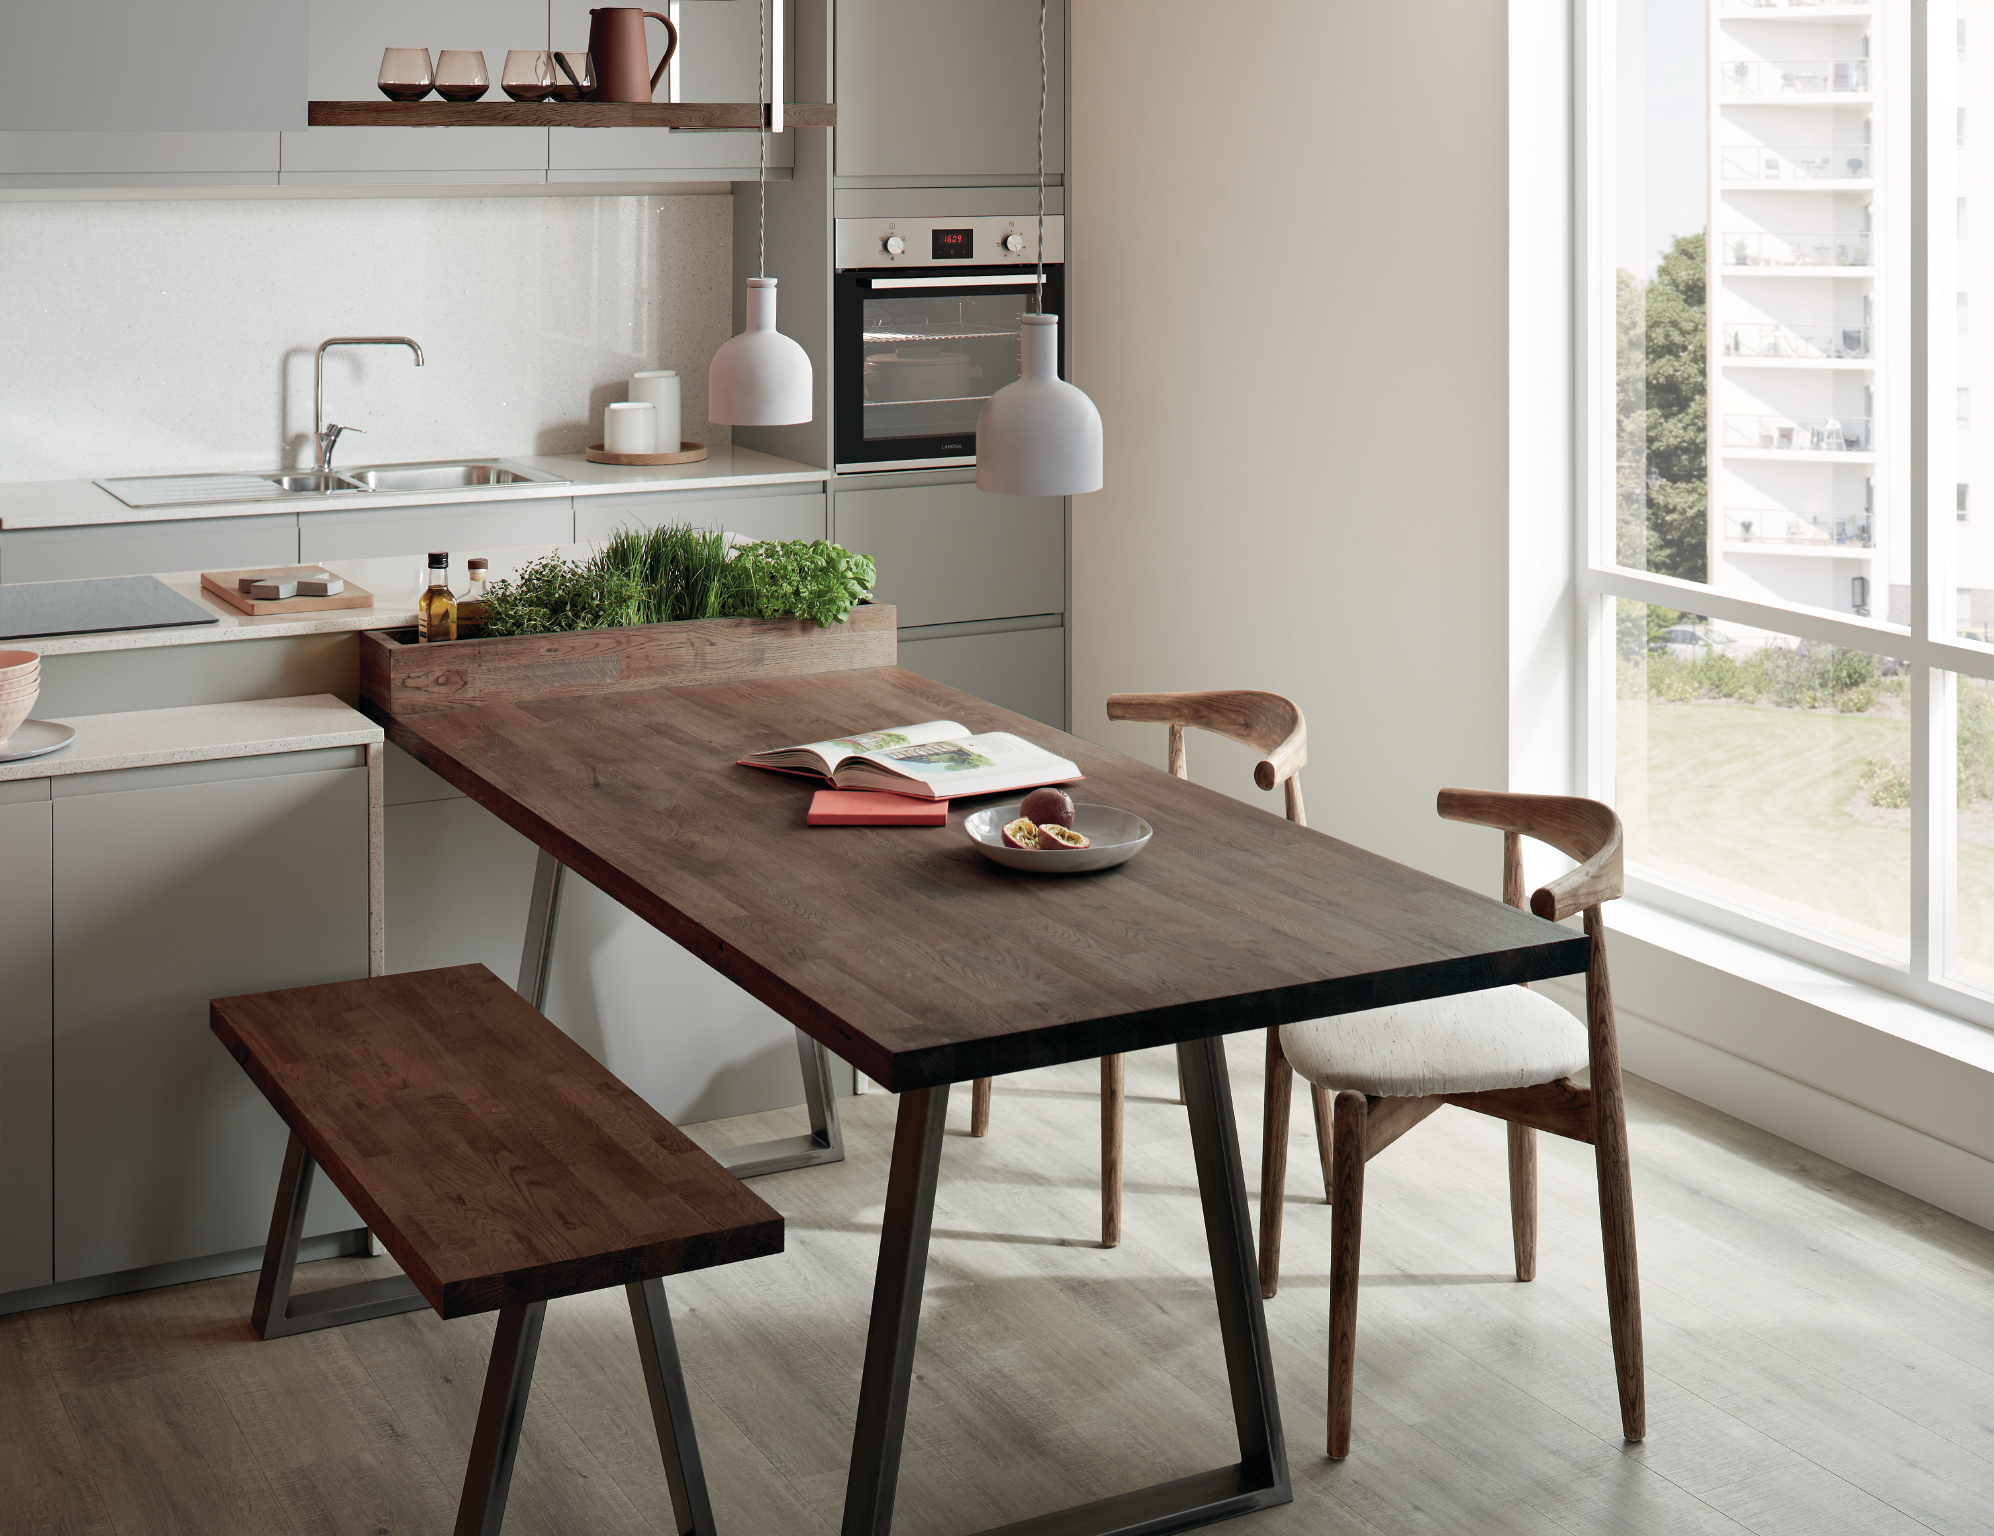 Howdens Urban Wild Kitchen Trend